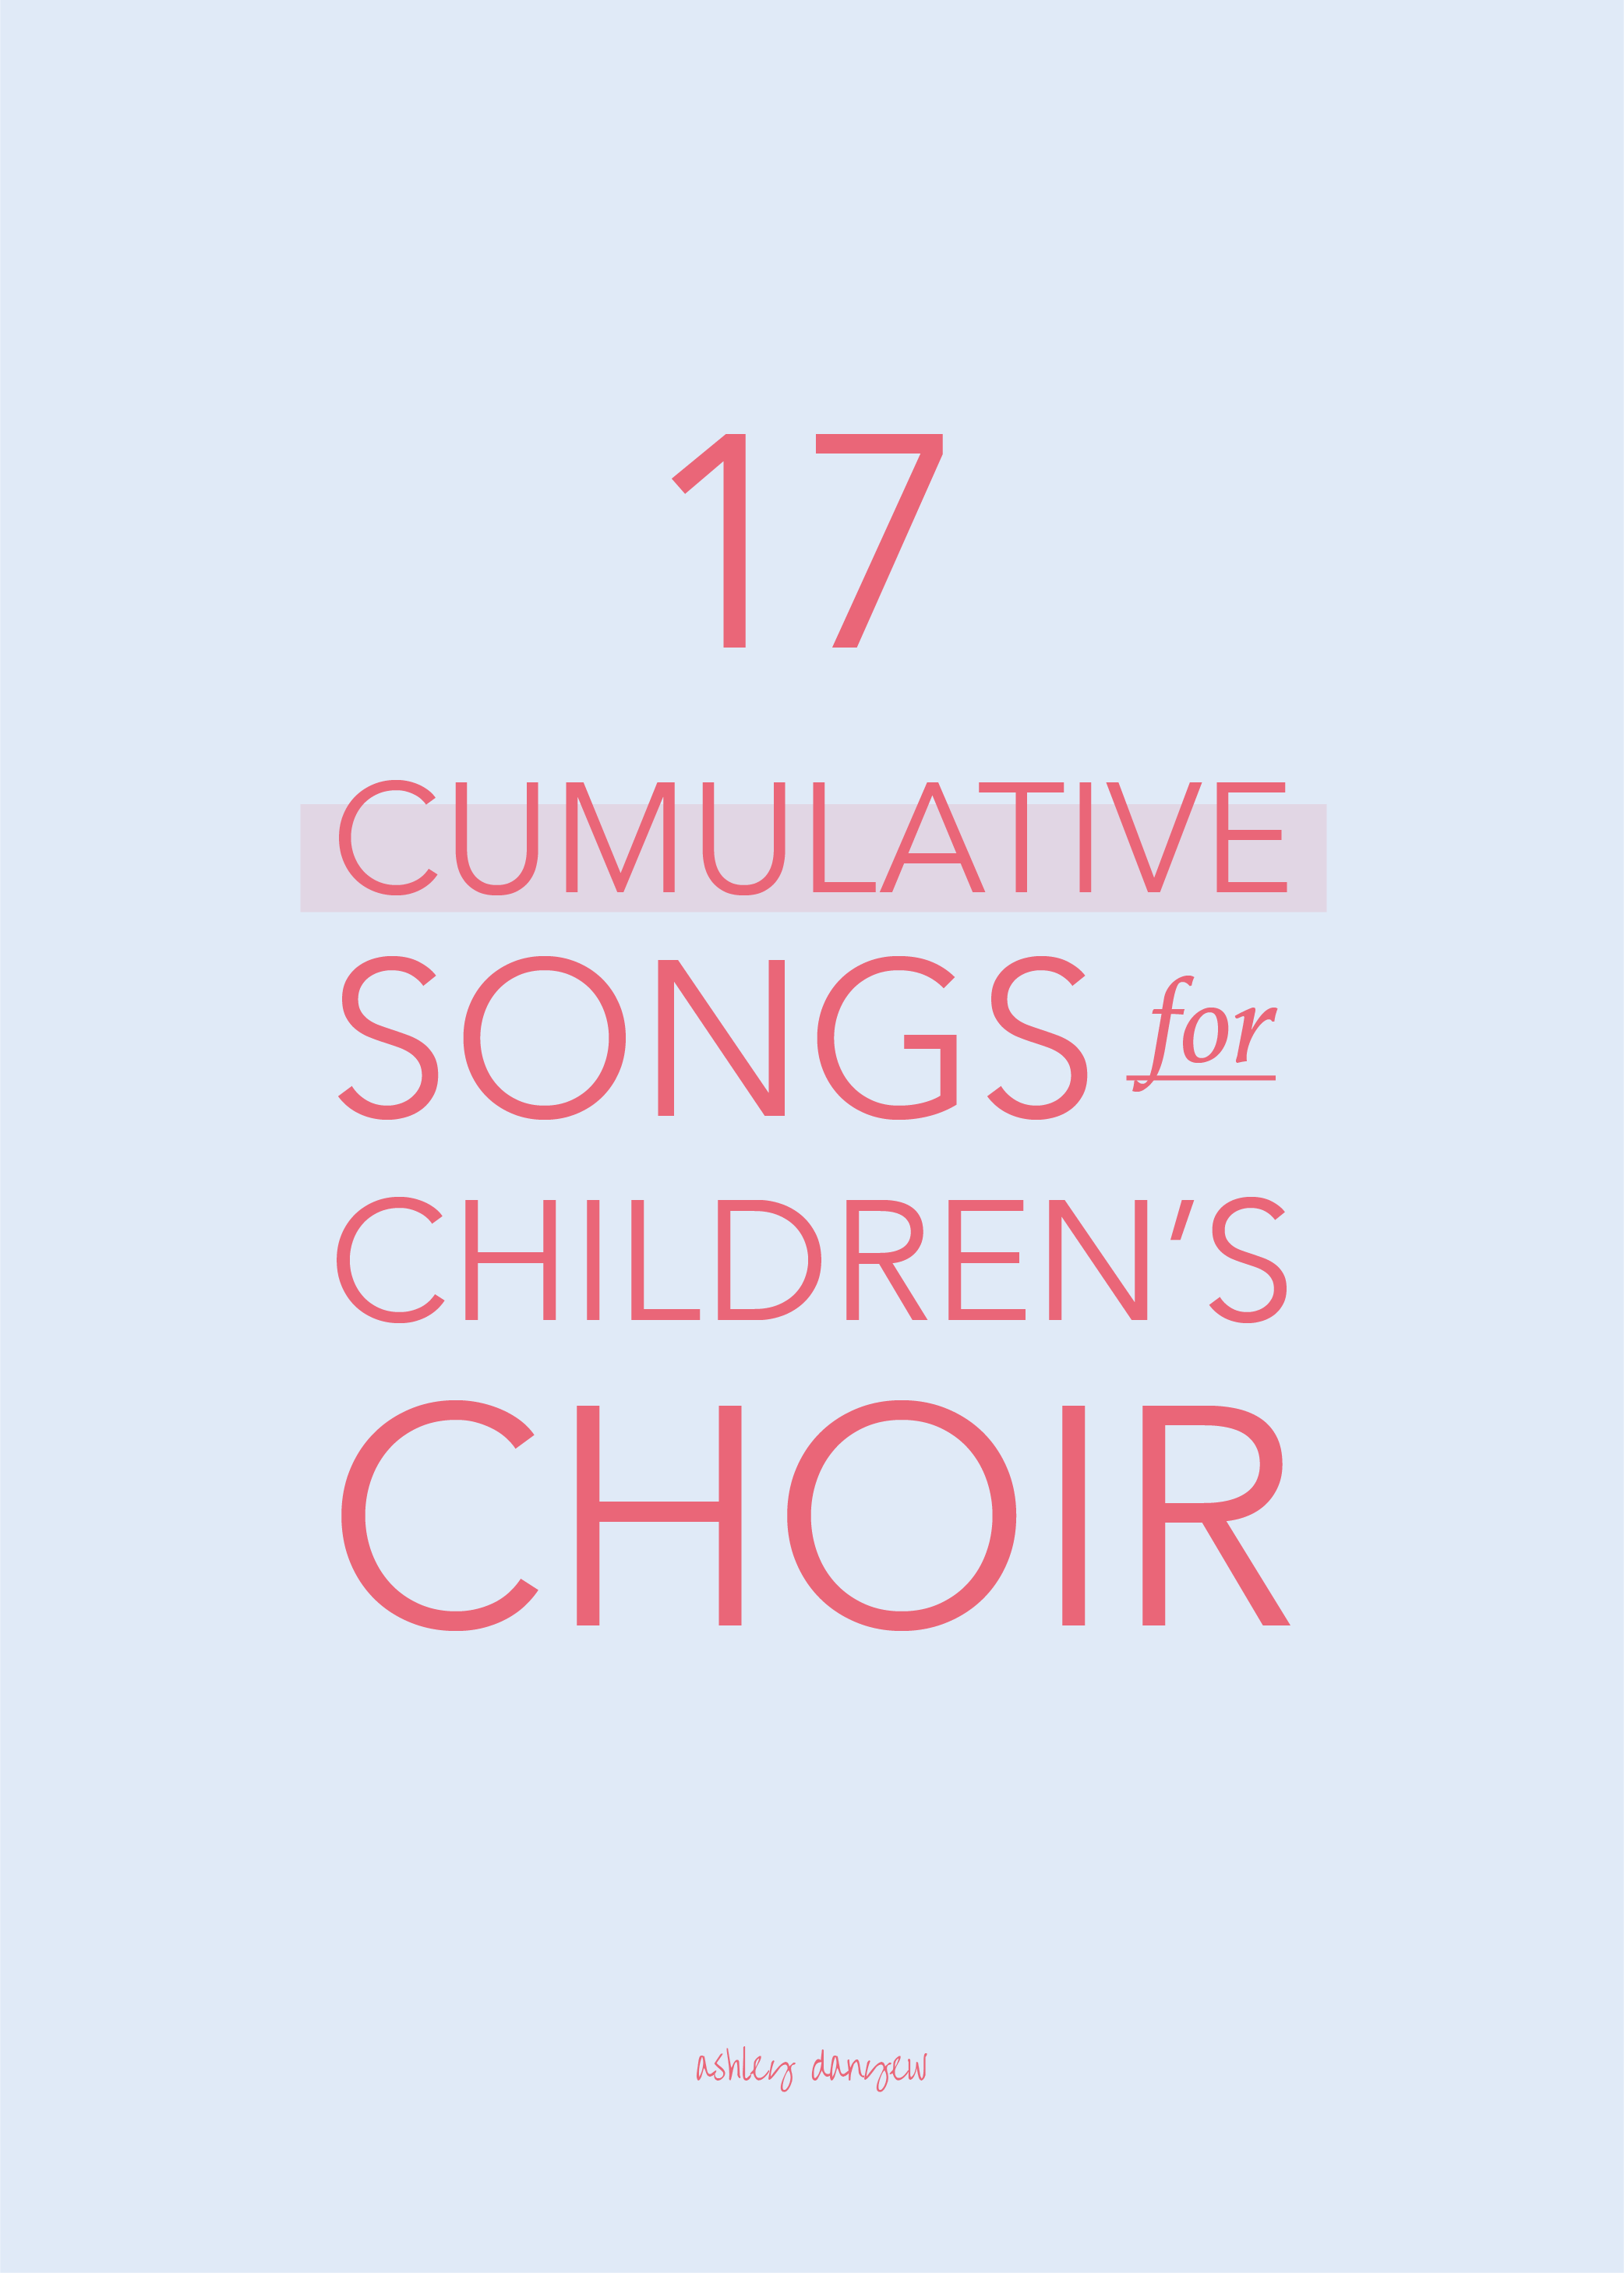 17 Cumulative Songs For Children S Choir Ashley Danyew Check out our you will be found selection for the very best in unique or custom, handmade pieces from our prints shops. 17 cumulative songs for children s